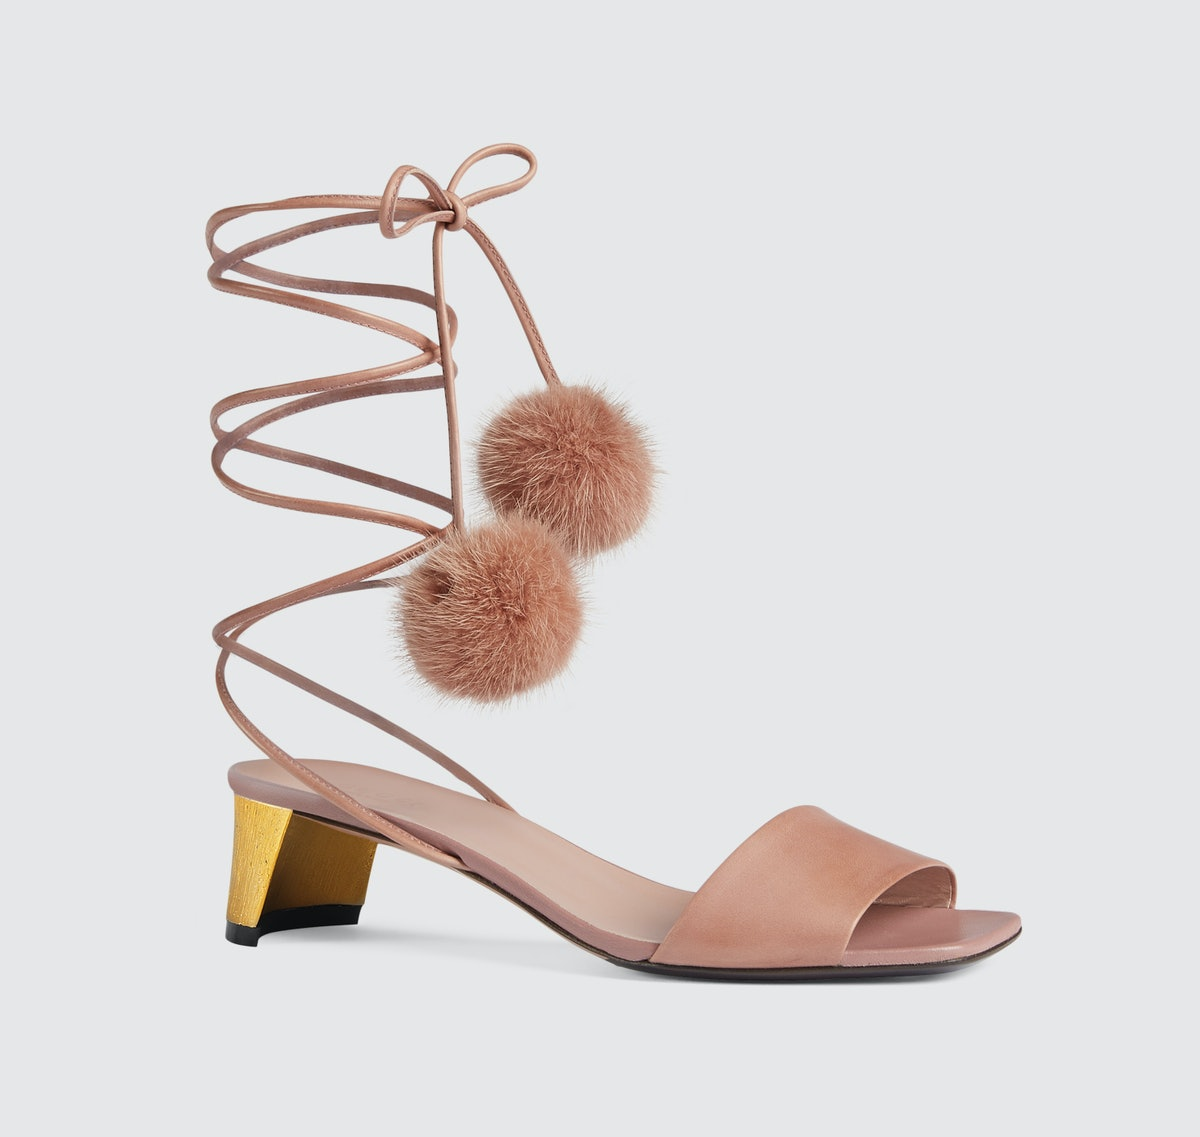 Gucci Heloise leather sandal